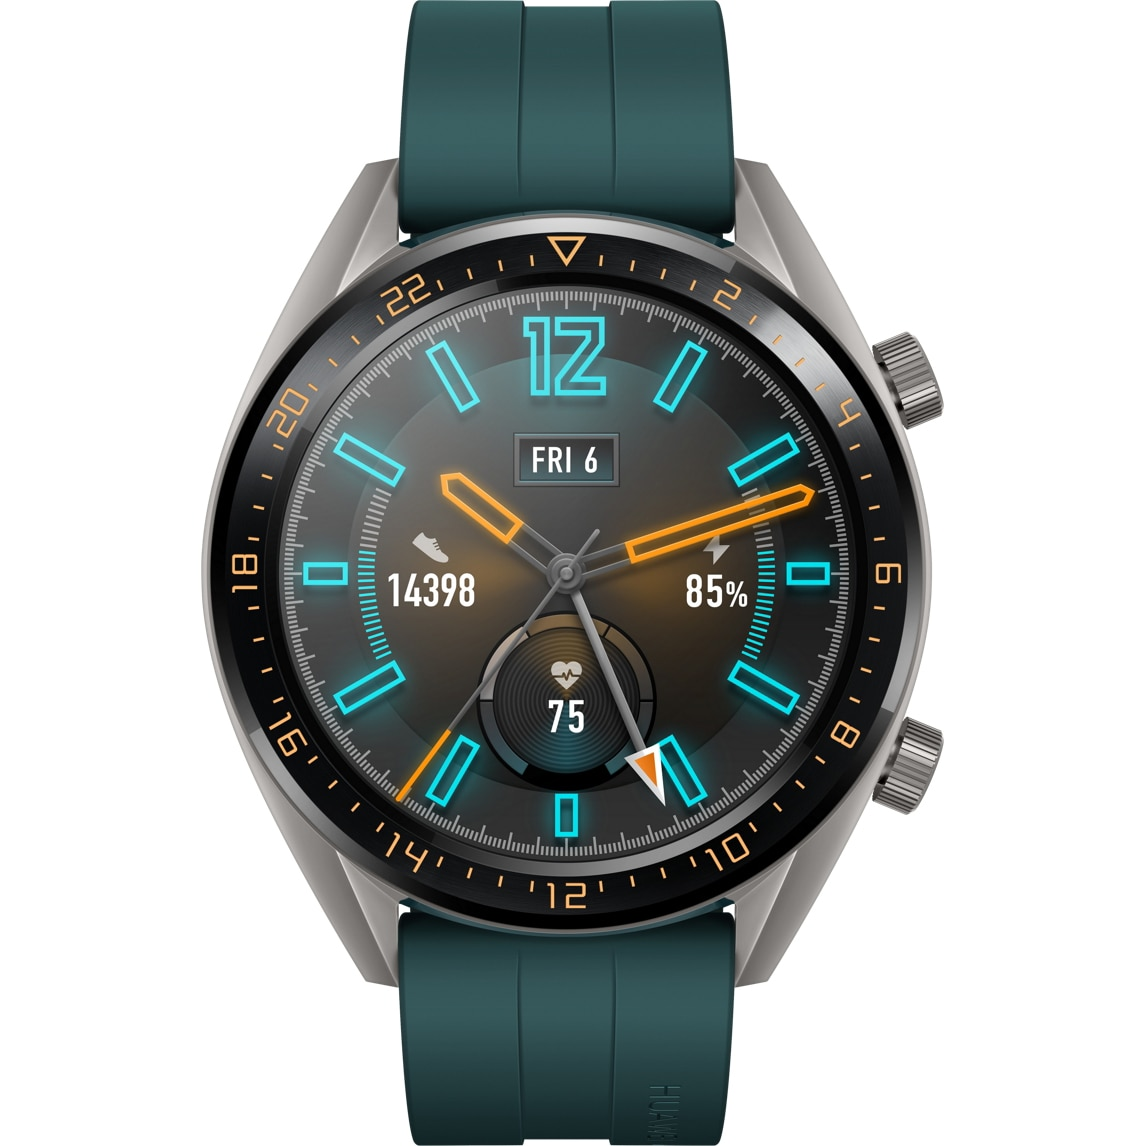 Fotografie Ceas smartwatch Huawei Watch GT, Dark Green